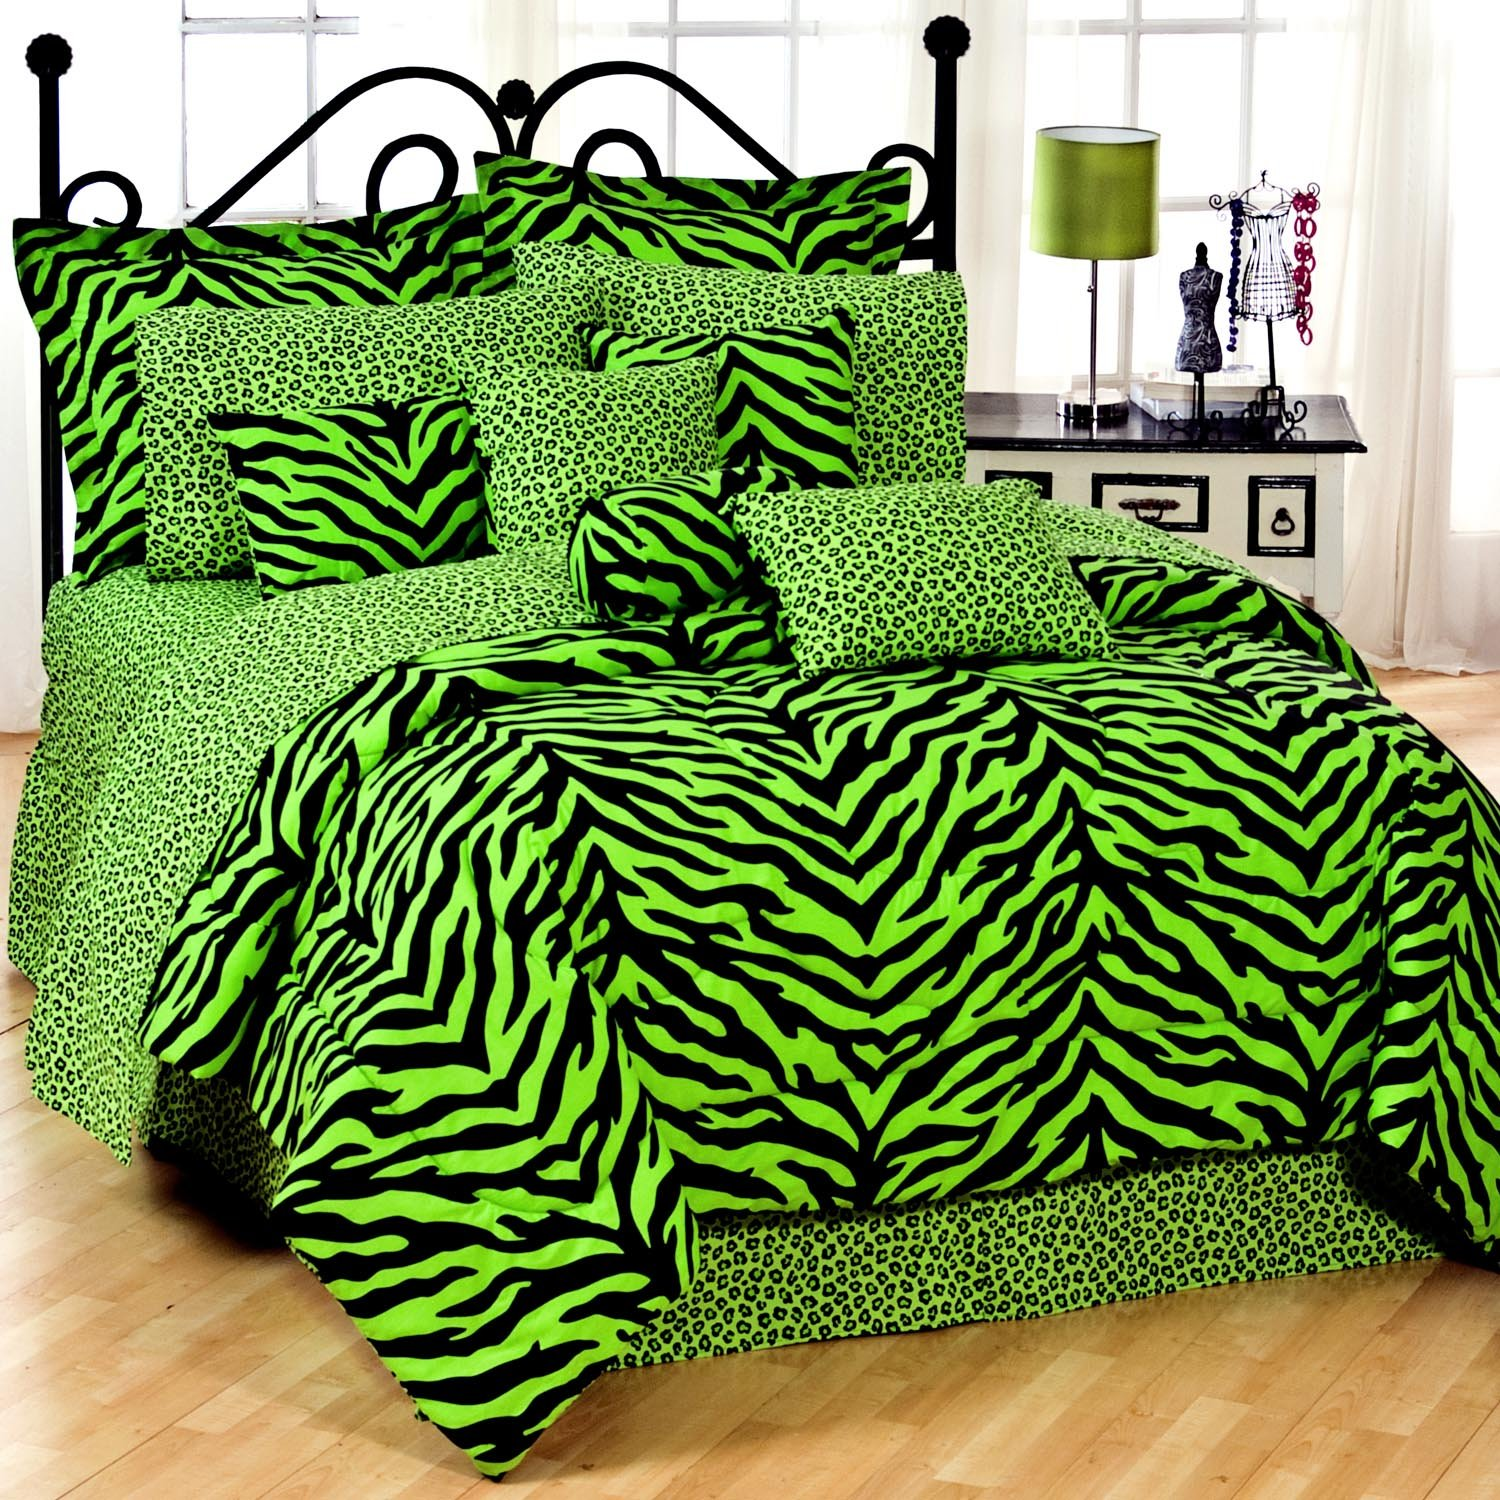 Zebra print bedroom set - Black Lime Green Zebra Print Bed In A Bag Set